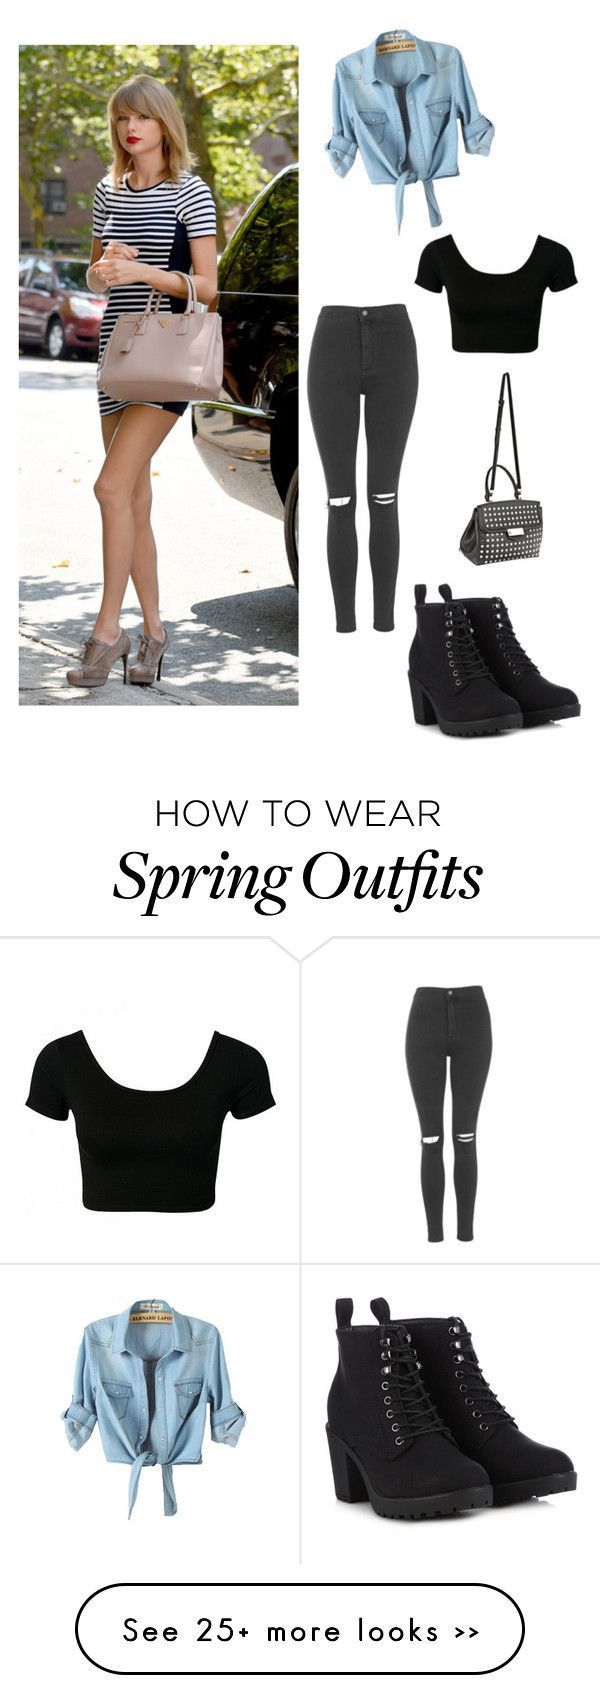 My First Polyvore Outfit by brigittehernandezcornejo on Polyvore Clothing, Shoes & Jewelry - Women - nike women's shoes - http://amzn.to/2kkN5IR